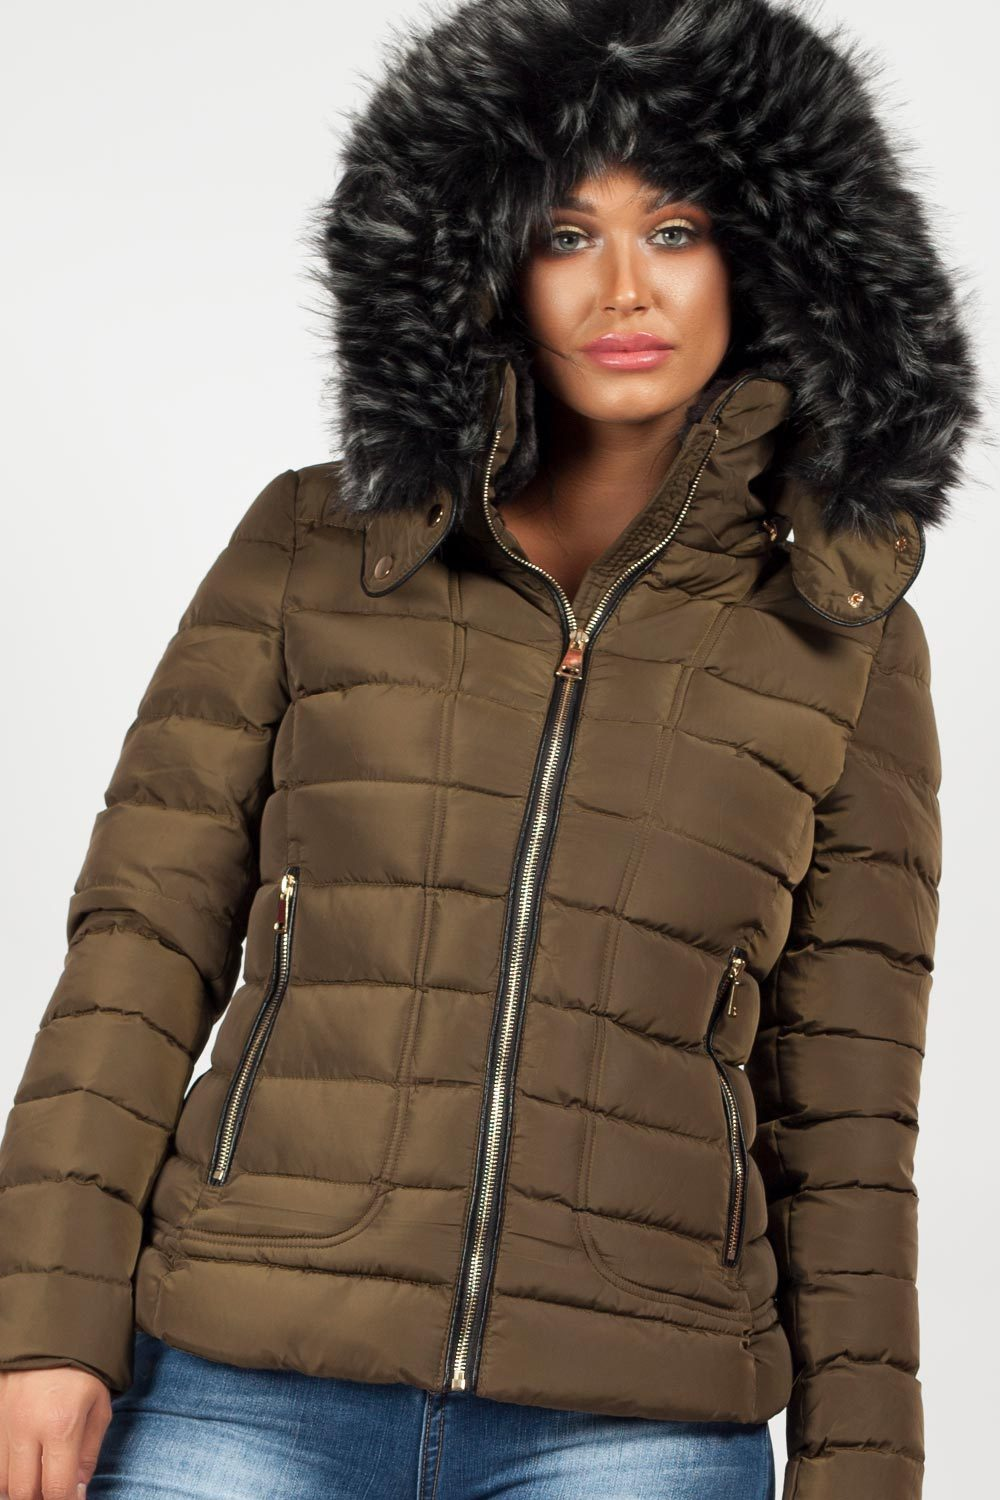 womens winter coats for sale khaki uk